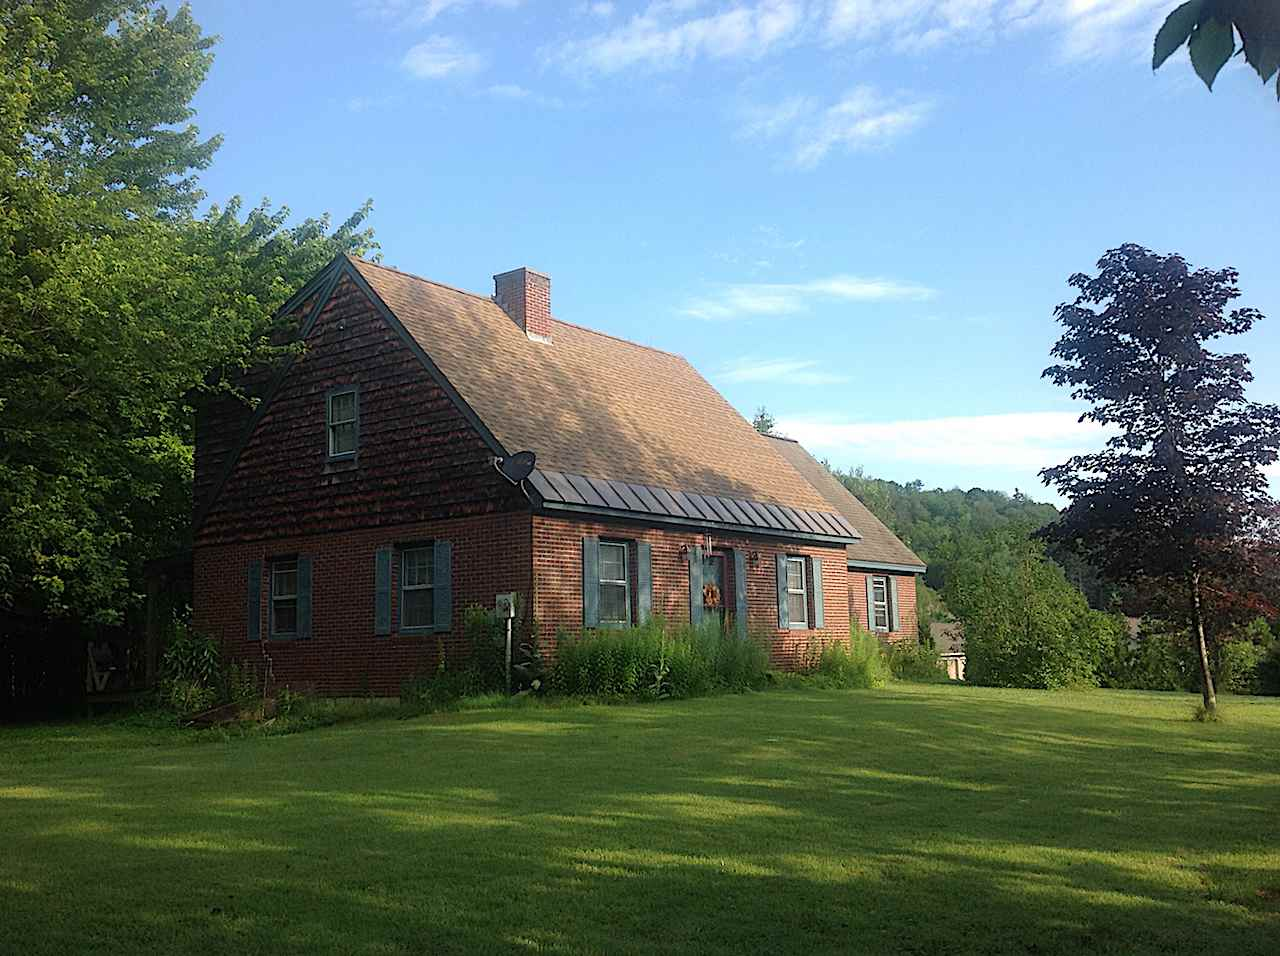 569 Route 100 North, Ludlow, VT 05149